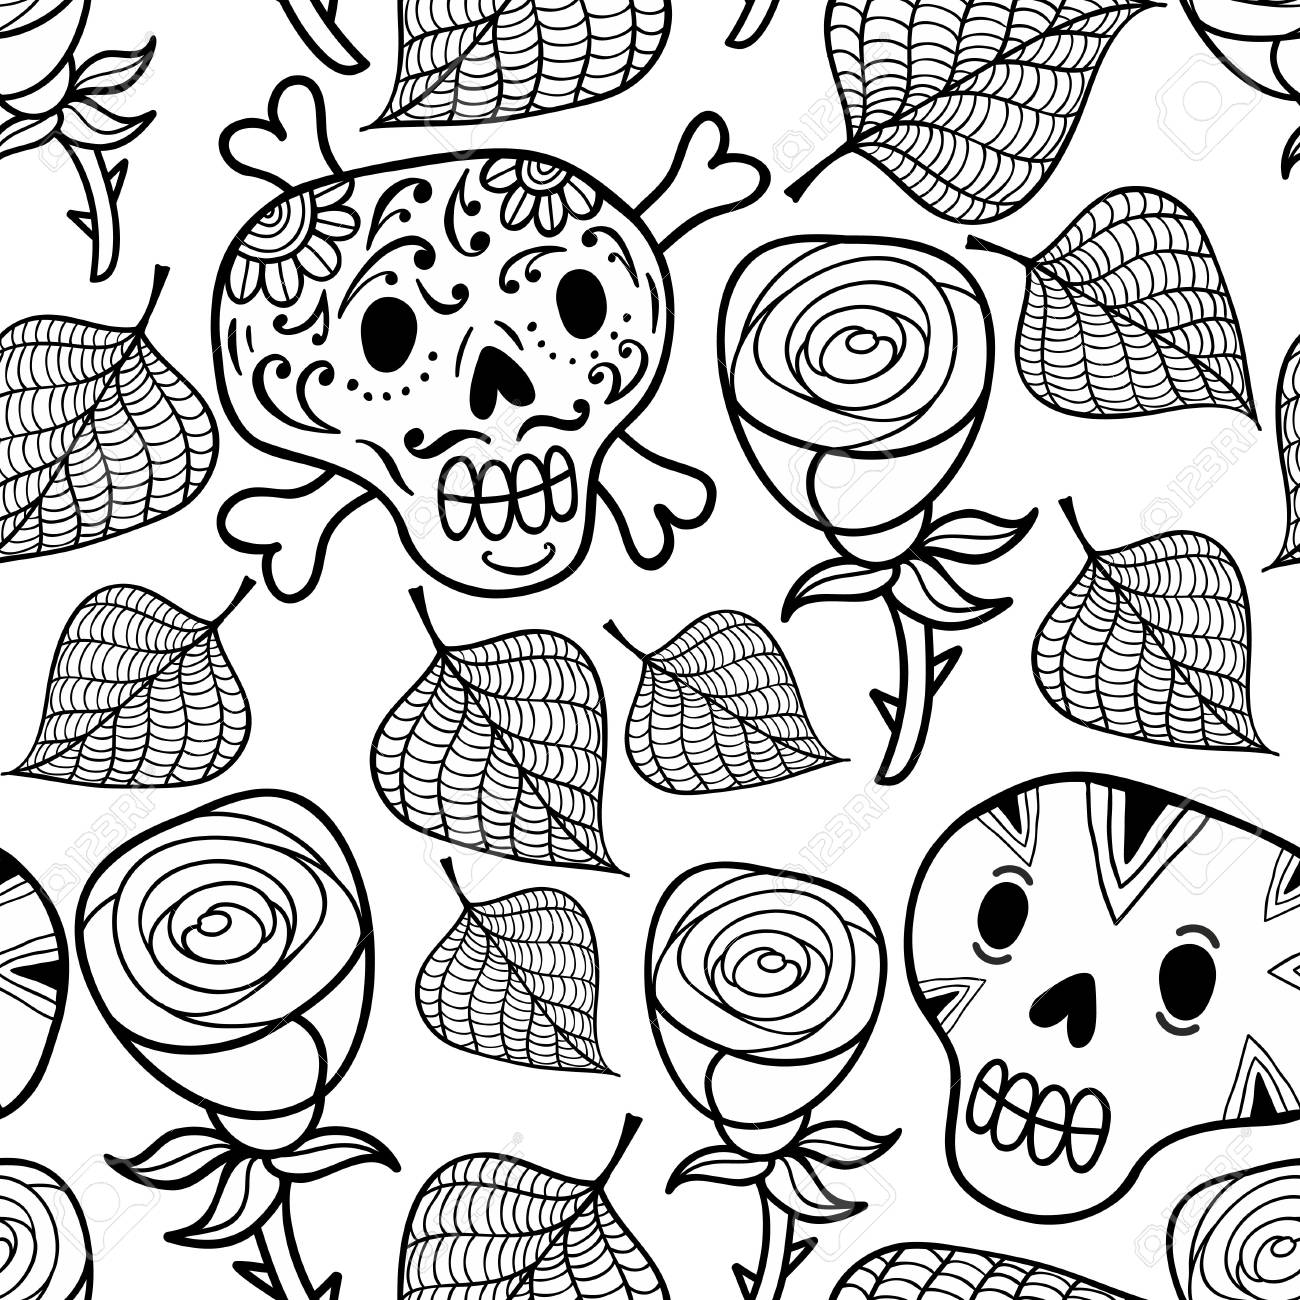 Black And White Seamless Illustration With Roses And Sugar Skulls